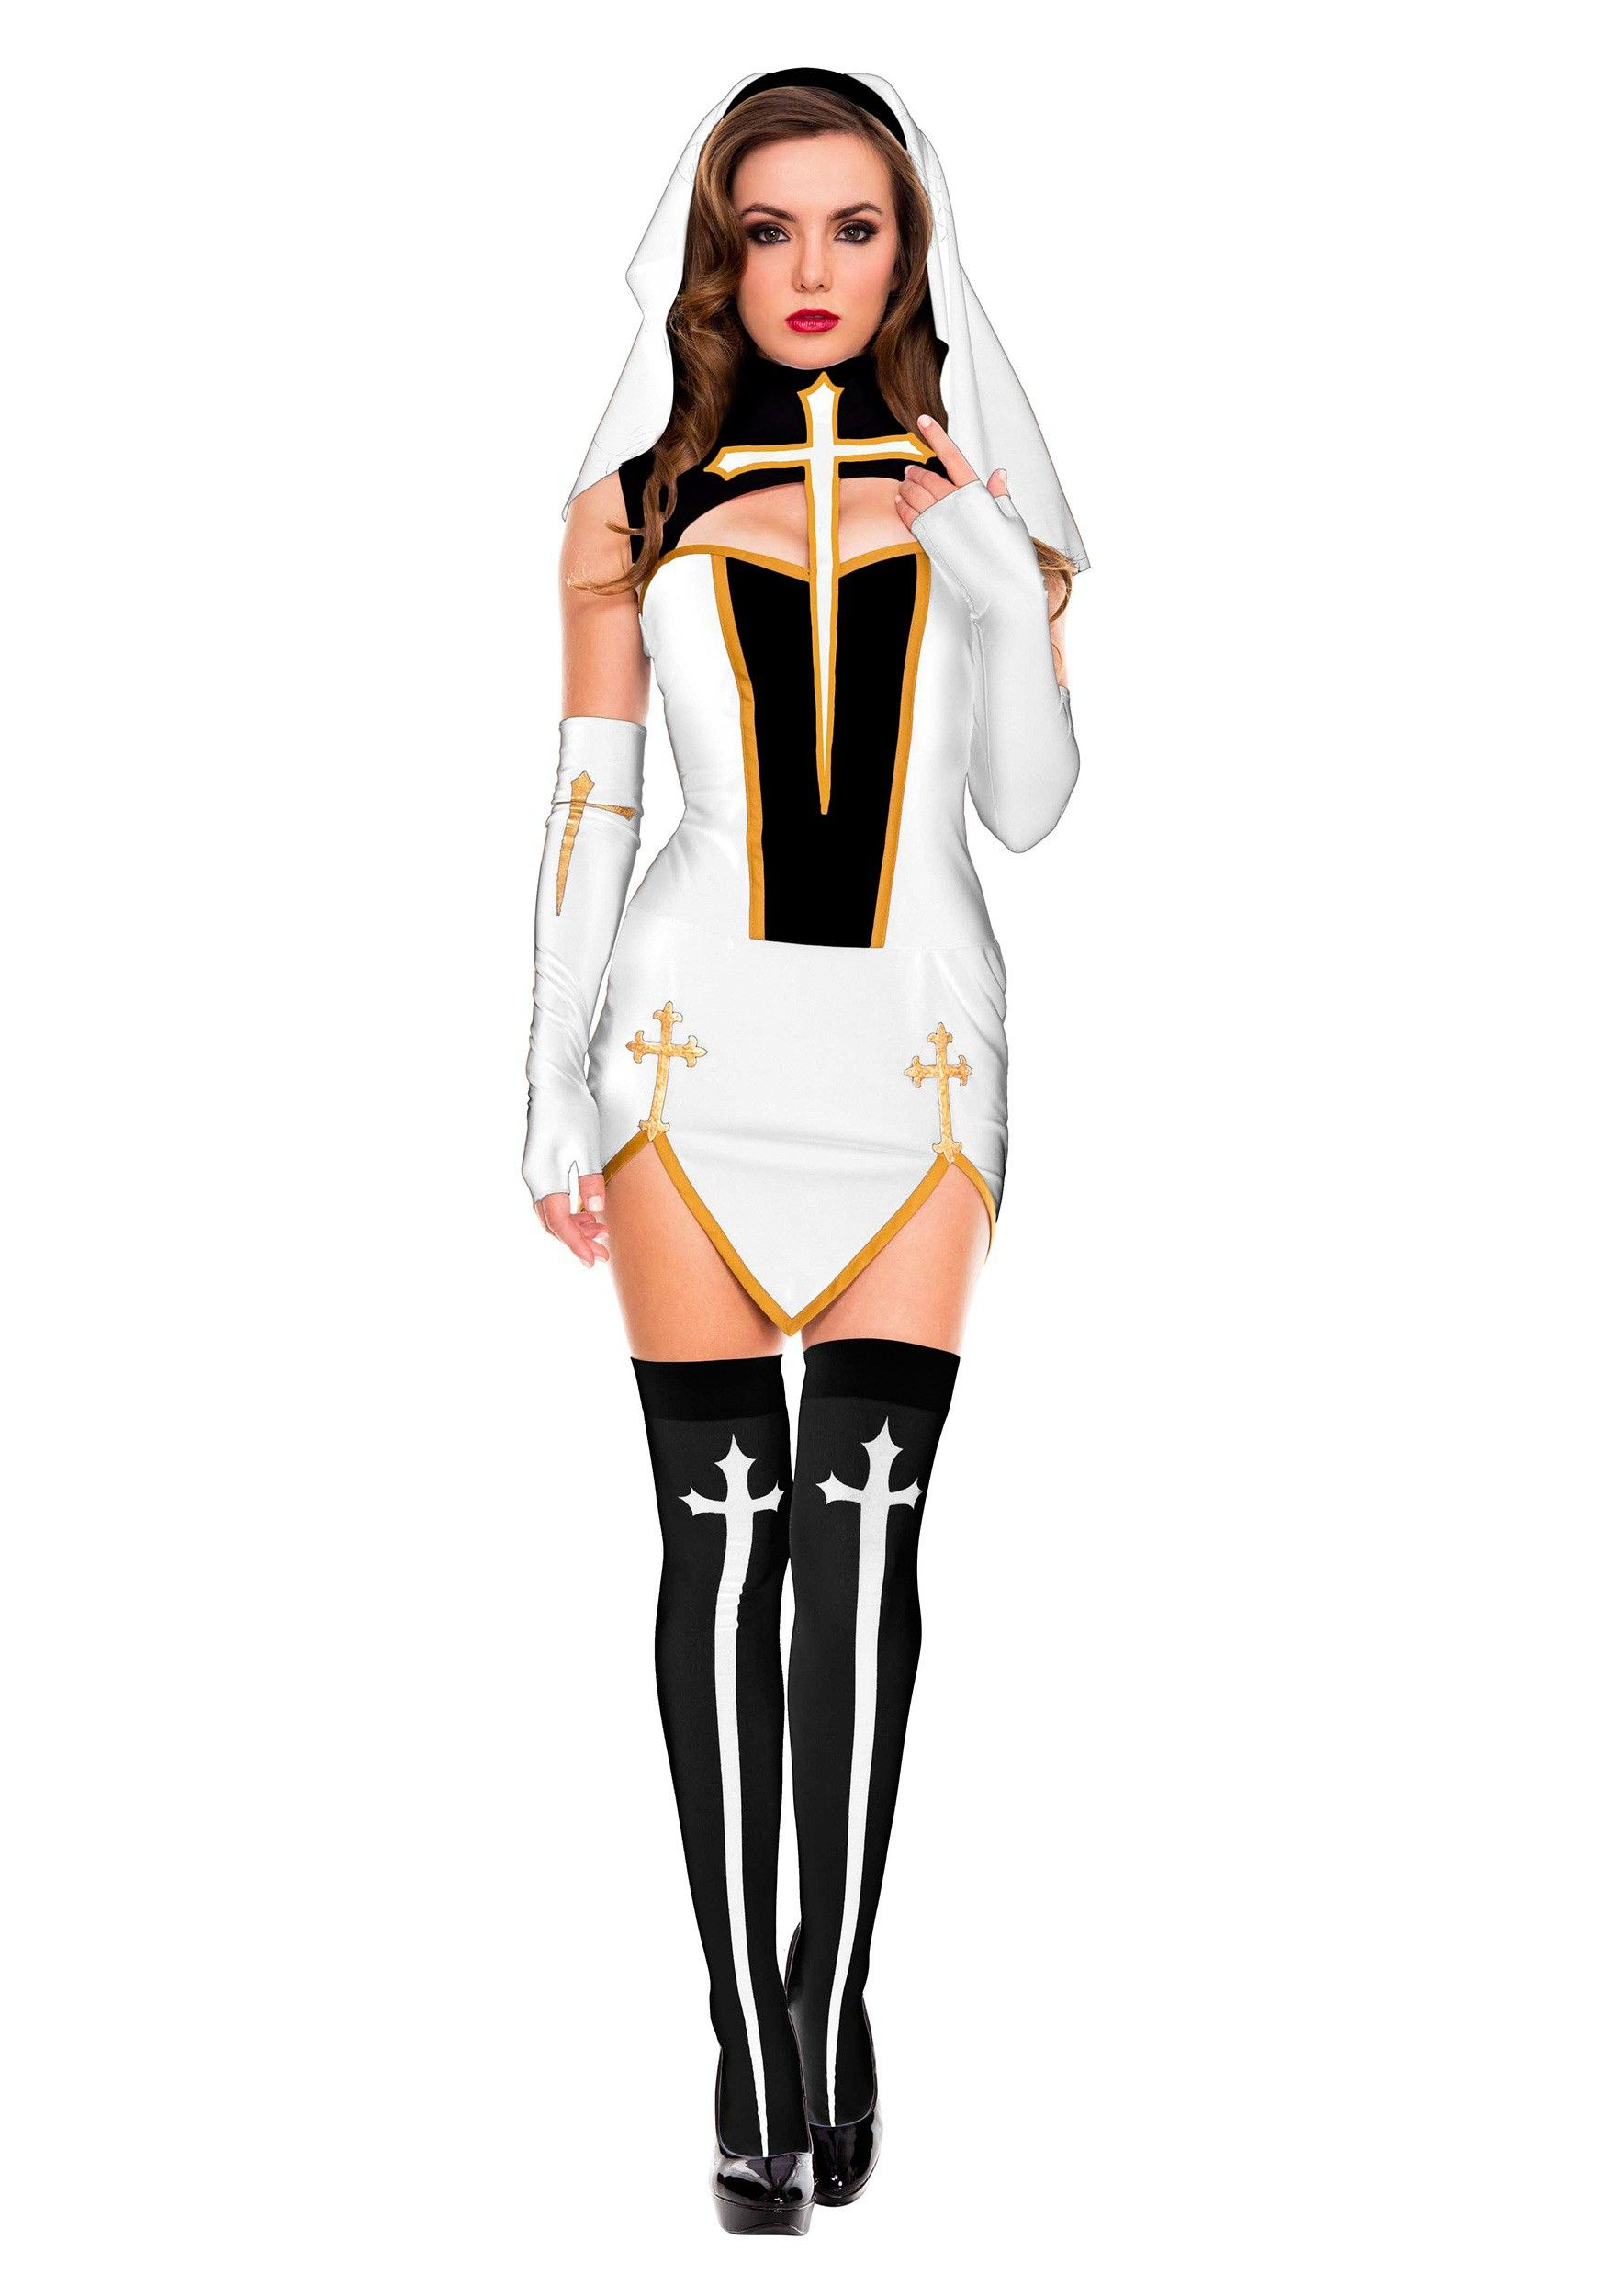 c1b6e1365b Get this uniquely styled White Bad Habit Nun Costume for women and show  everyone just how good you can look.